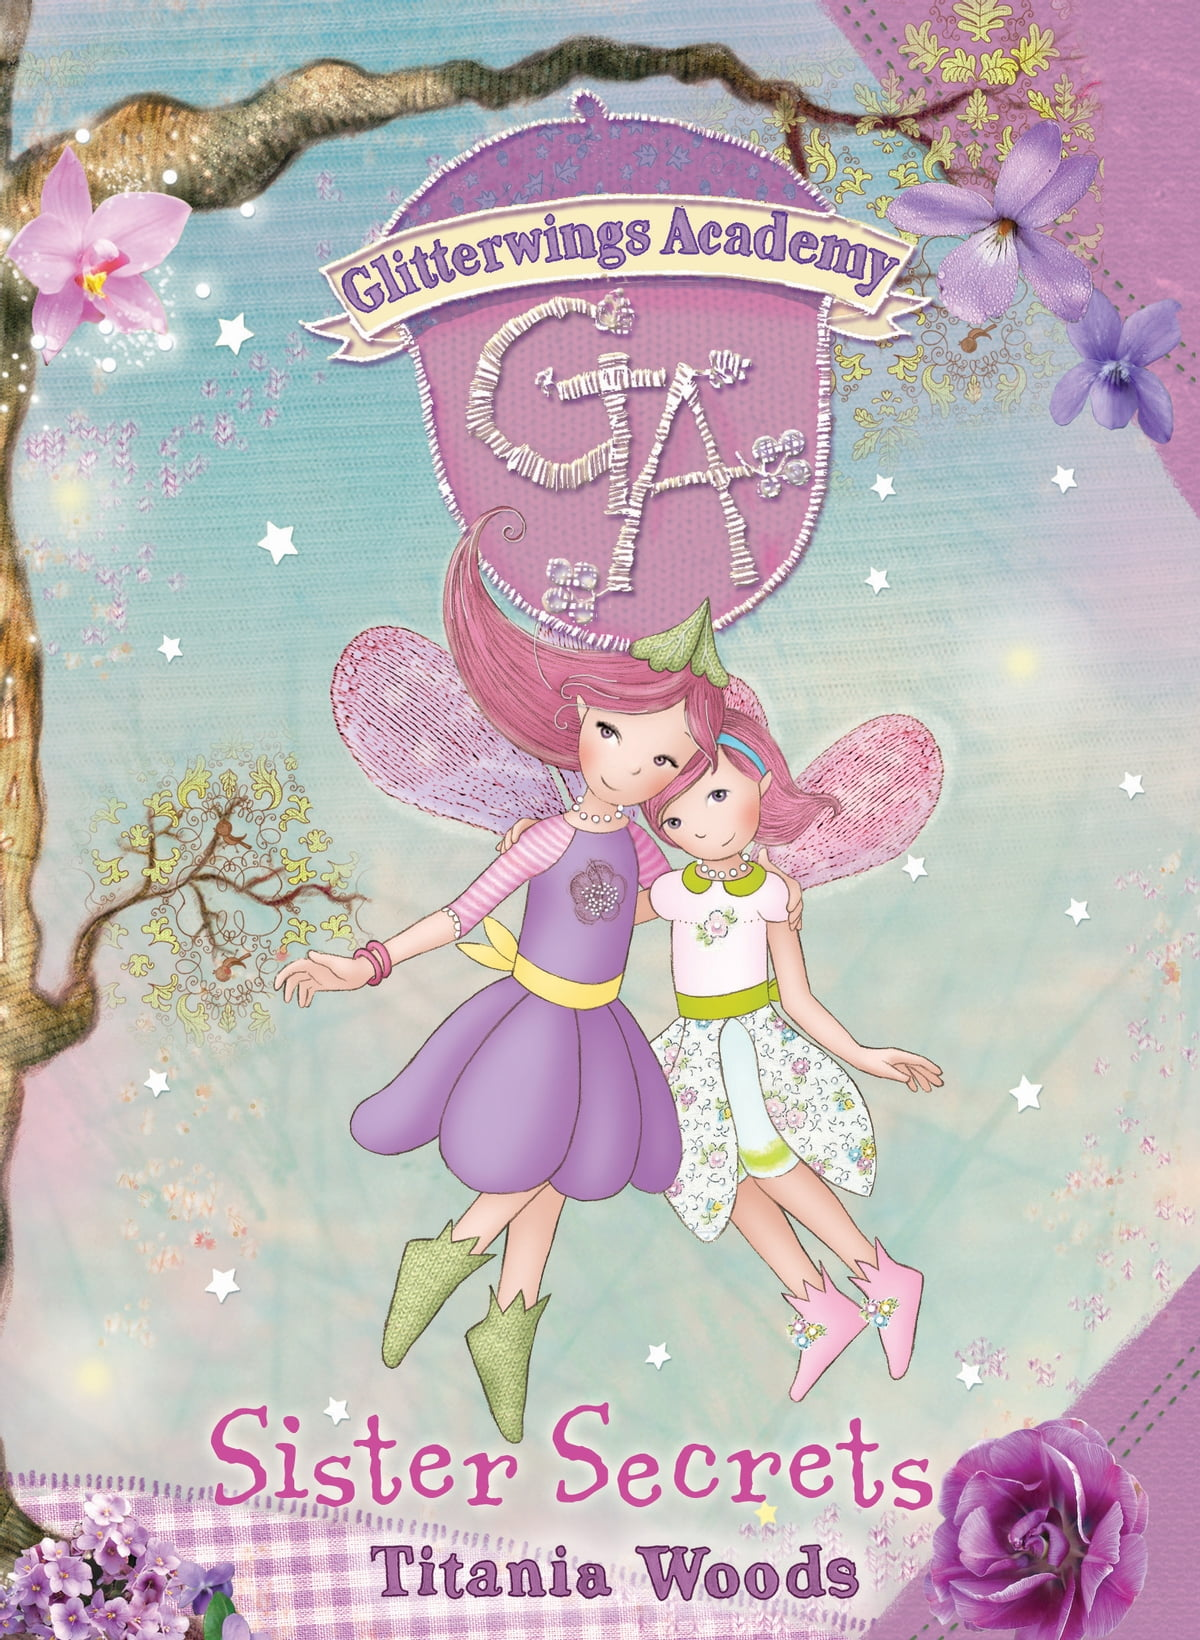 Download Midnight Feast Glitterwings Academy 2 By Titania Woods